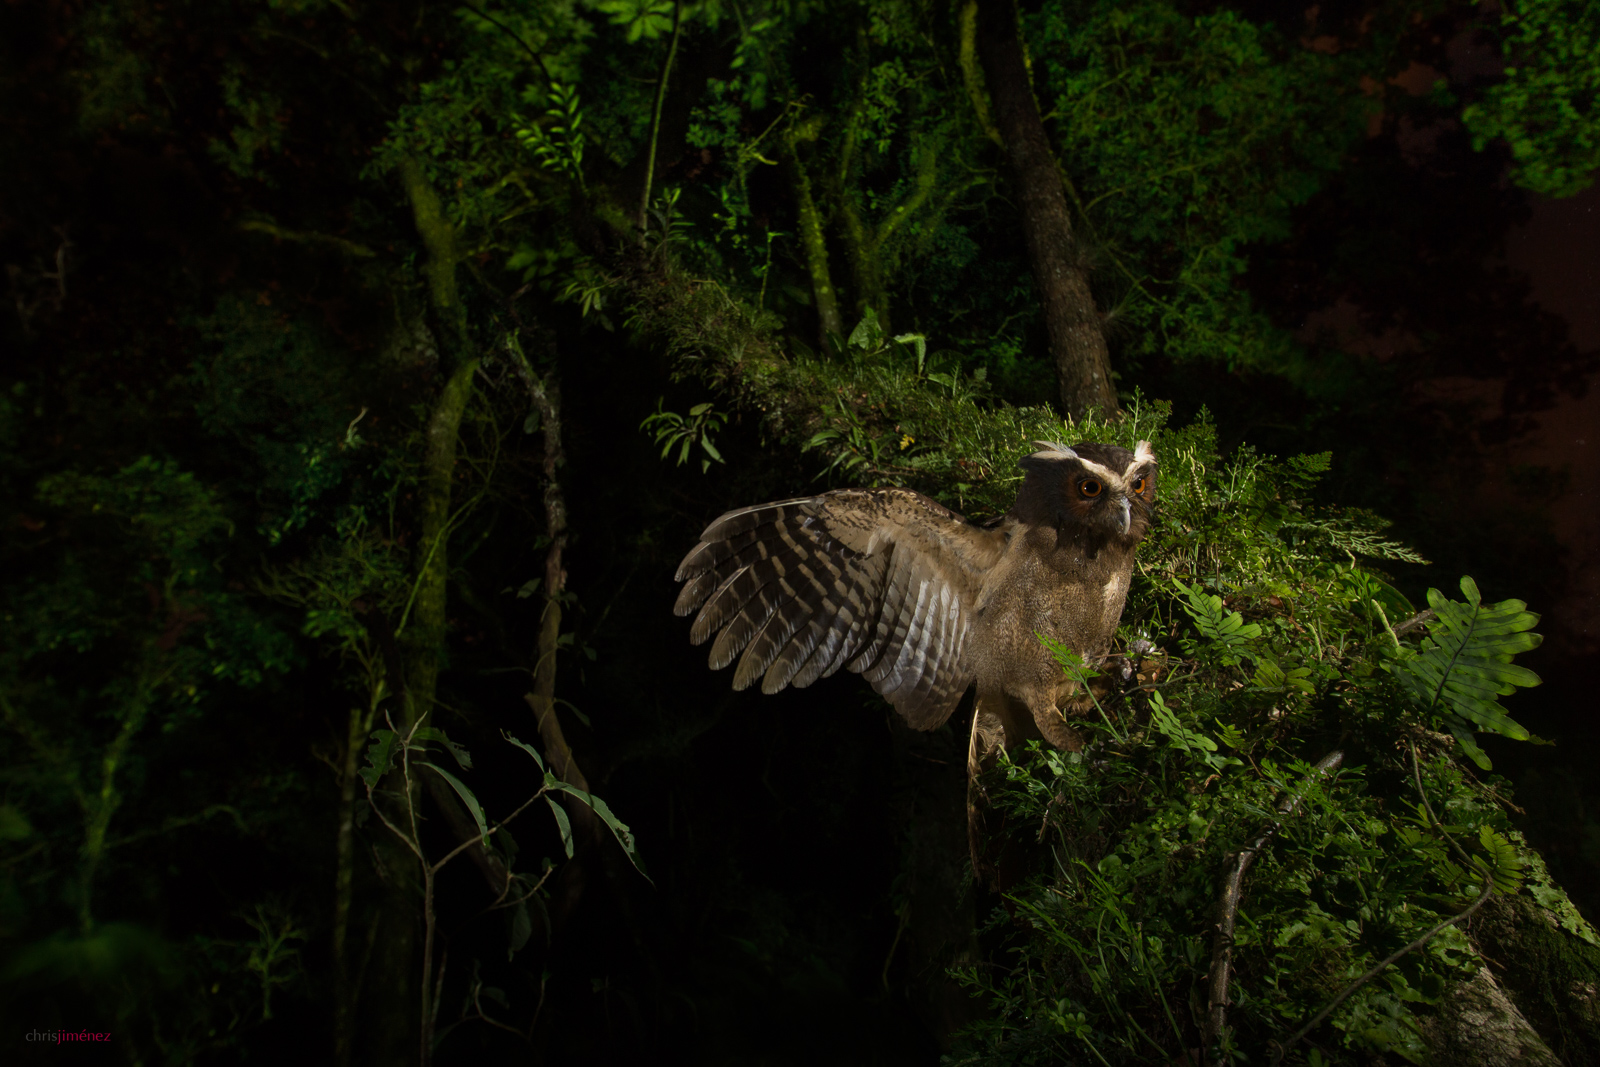 Crested Owl (Lophostrix cristata) at night landing in a branch at Cinchona, Costa Rica http://www.chrisjimenez.net